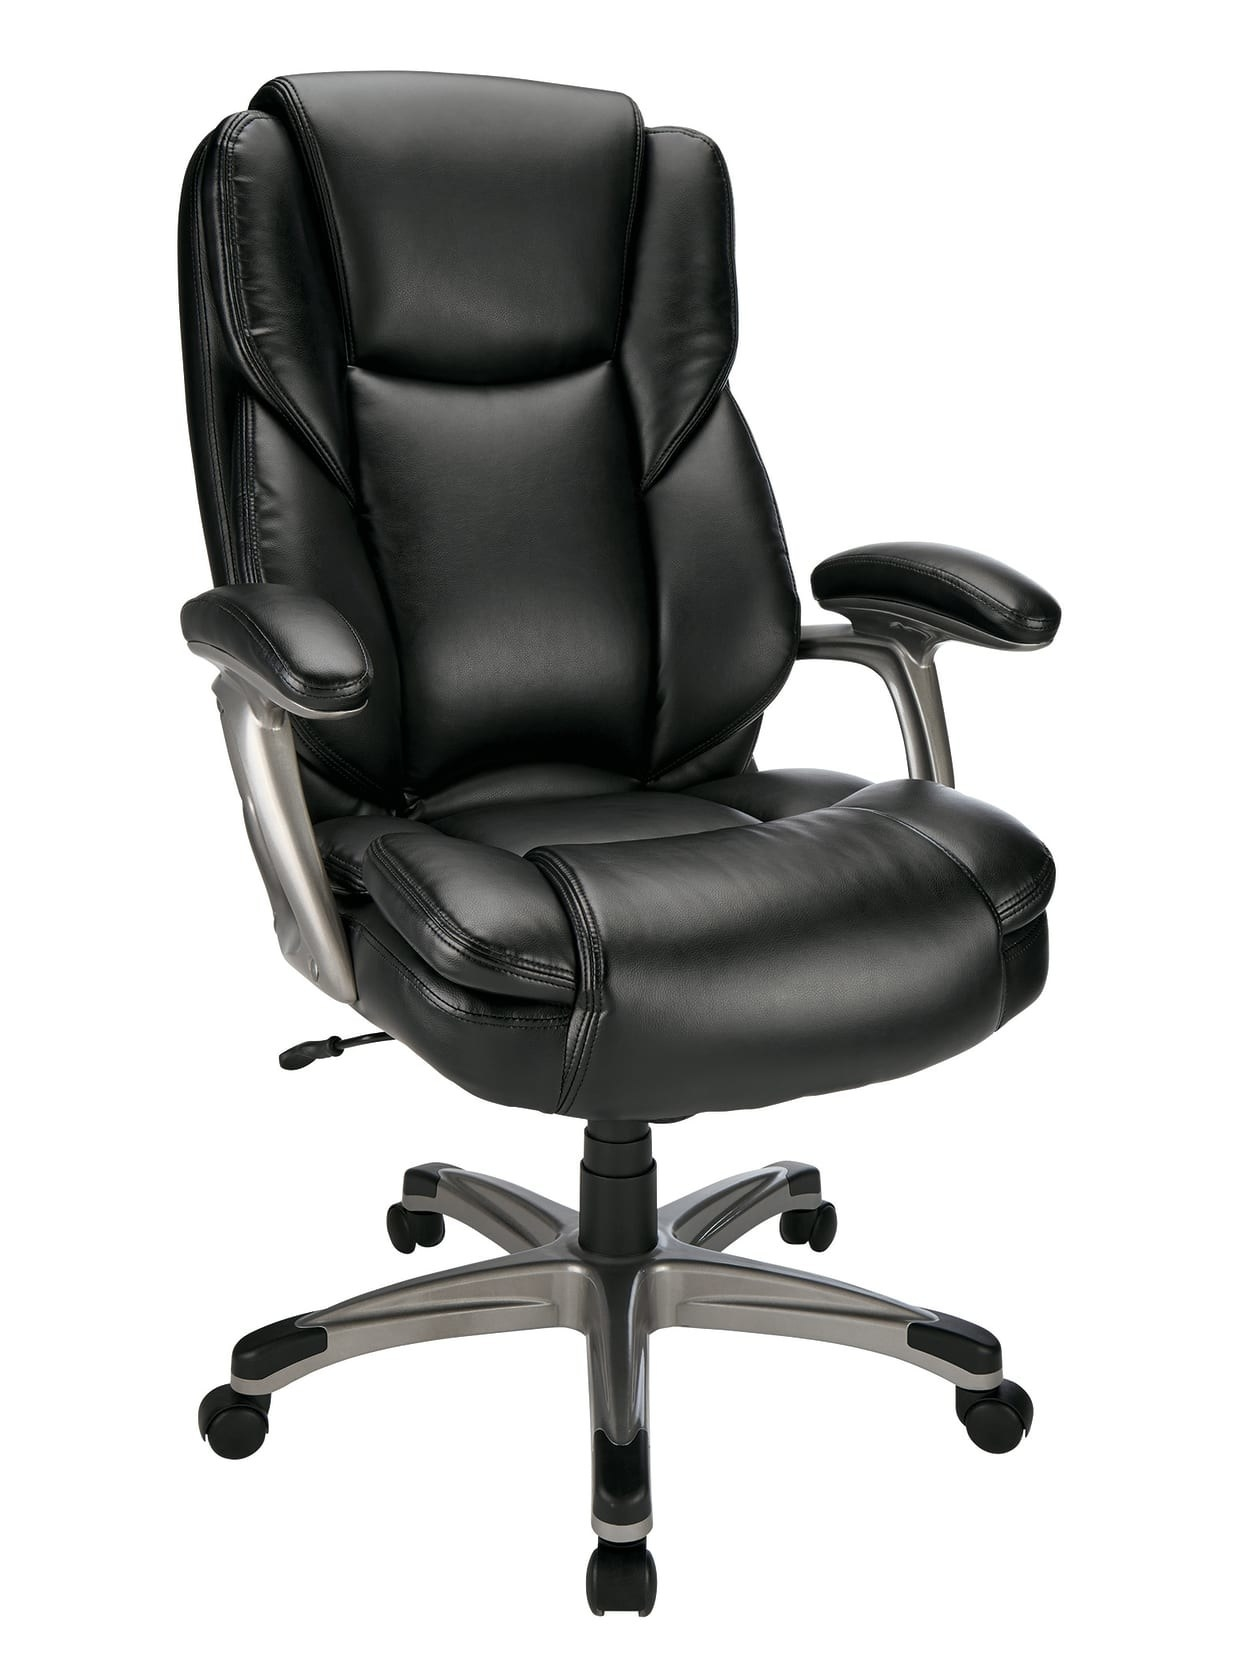 the chair in black